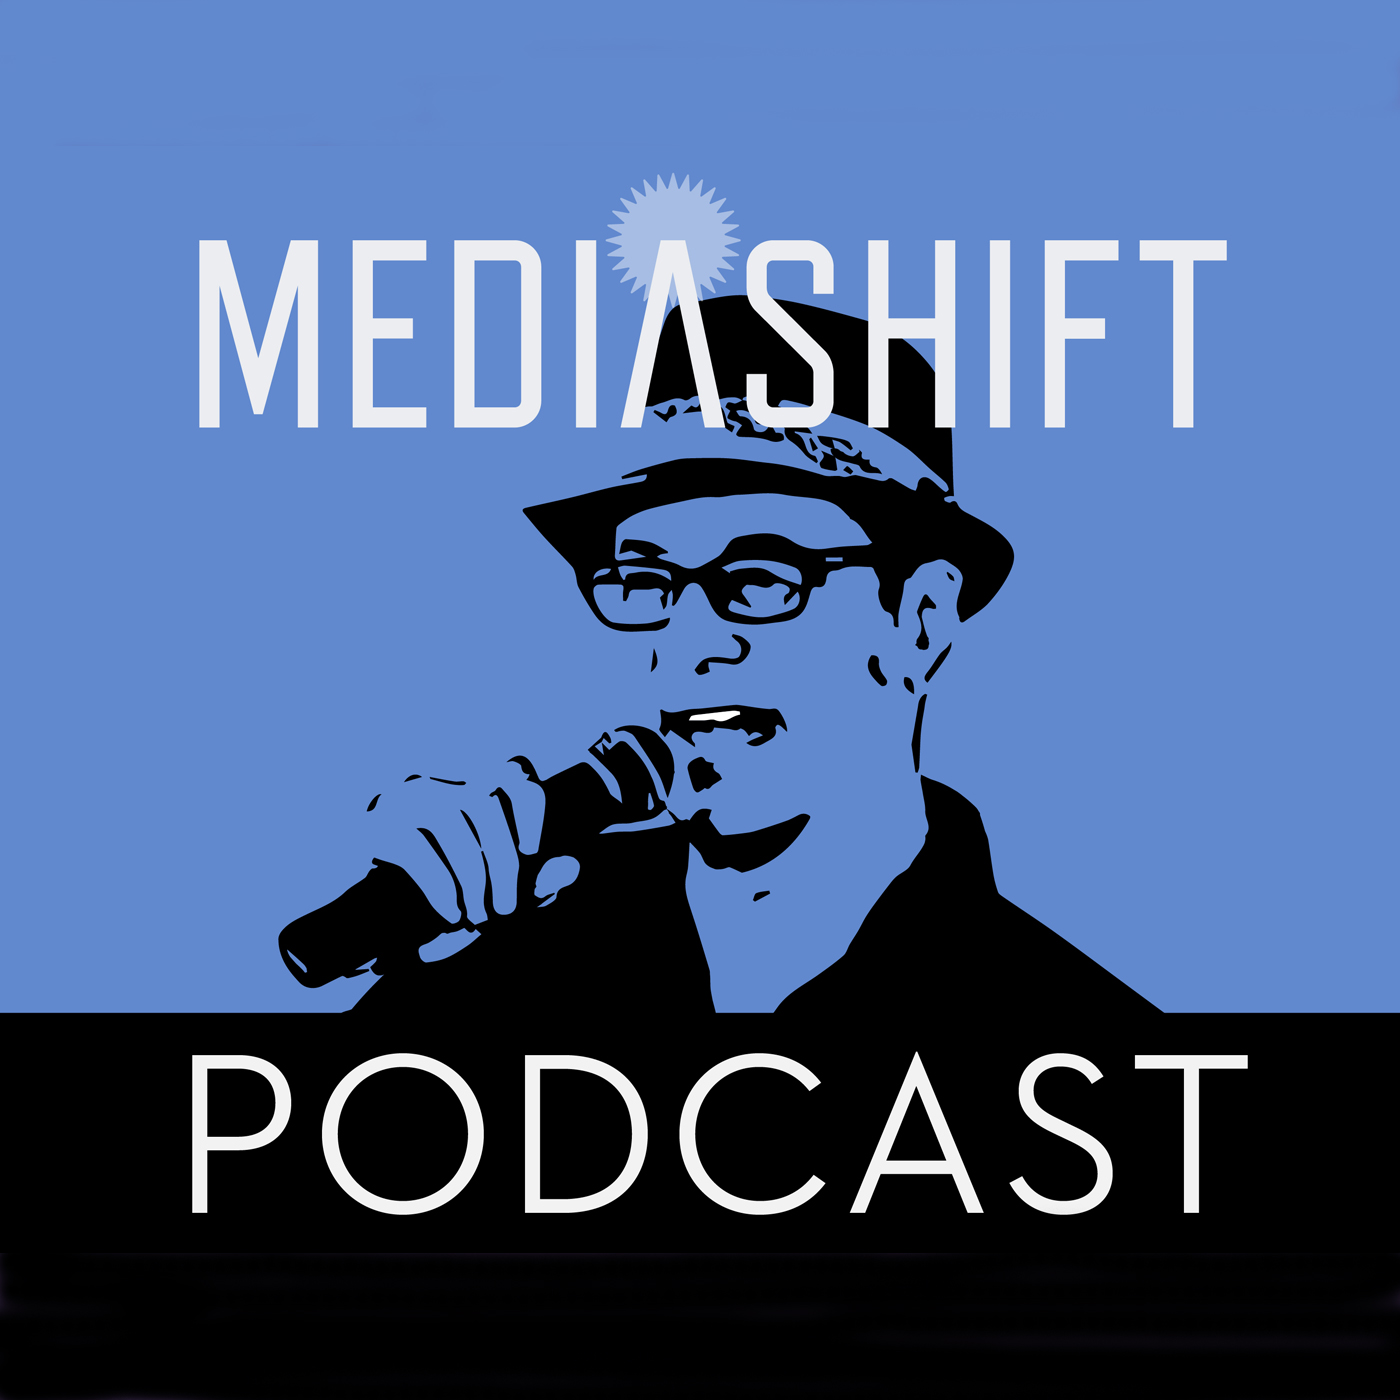 The MediaShift Podcast